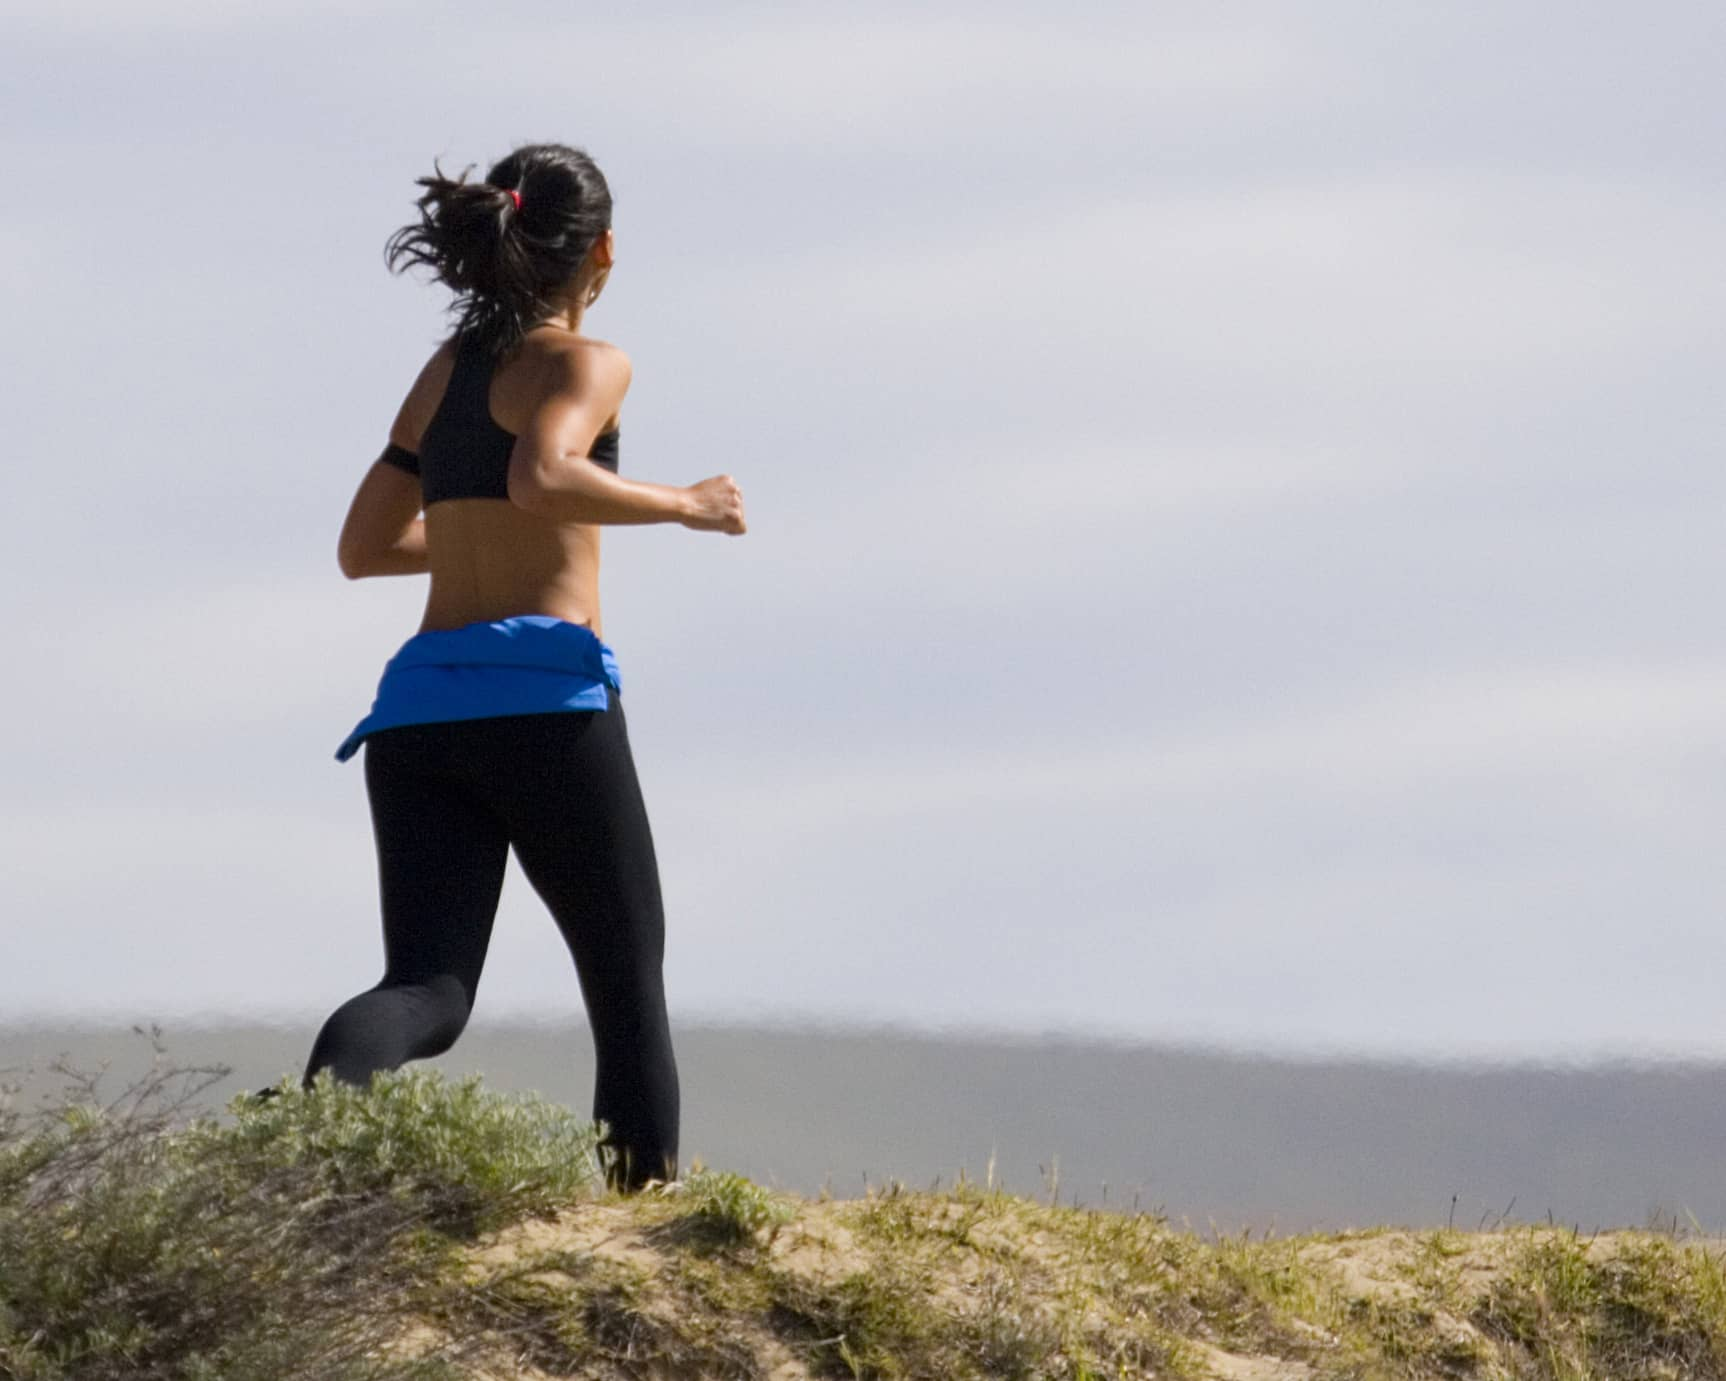 Jogging woman in grass